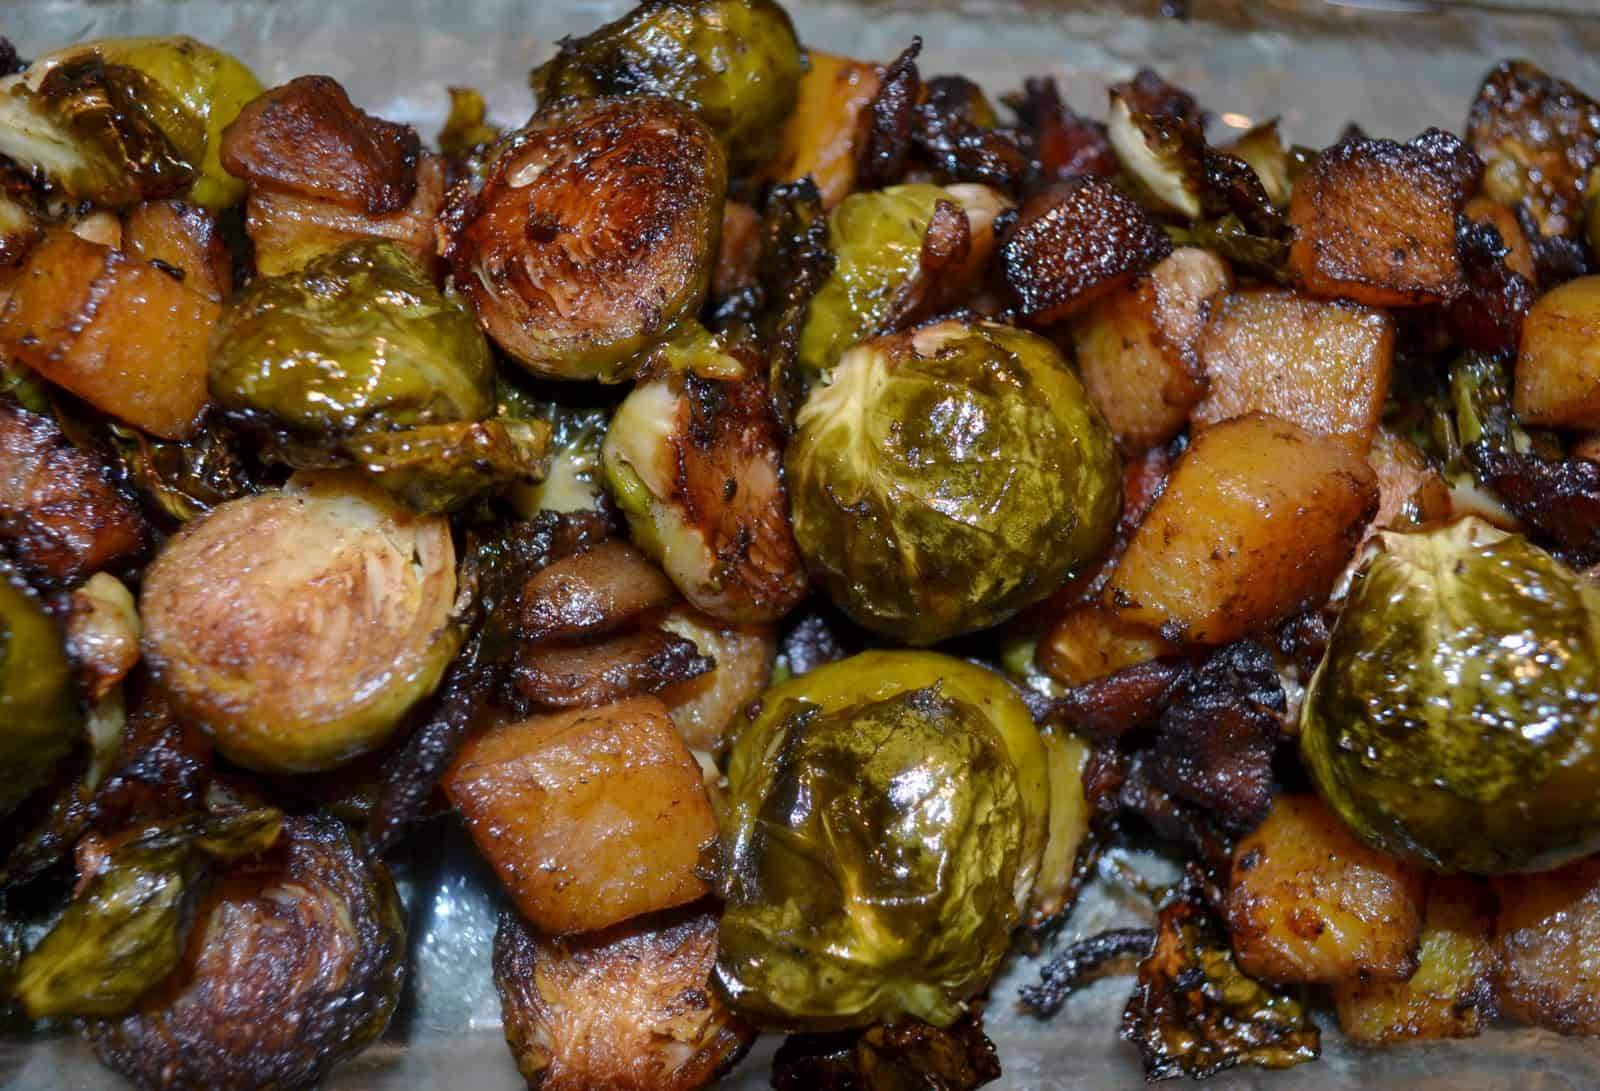 Roasted Brussel Sprouts and Butternut Squash with bacon is one of my favorite roasted vegetable recipes.